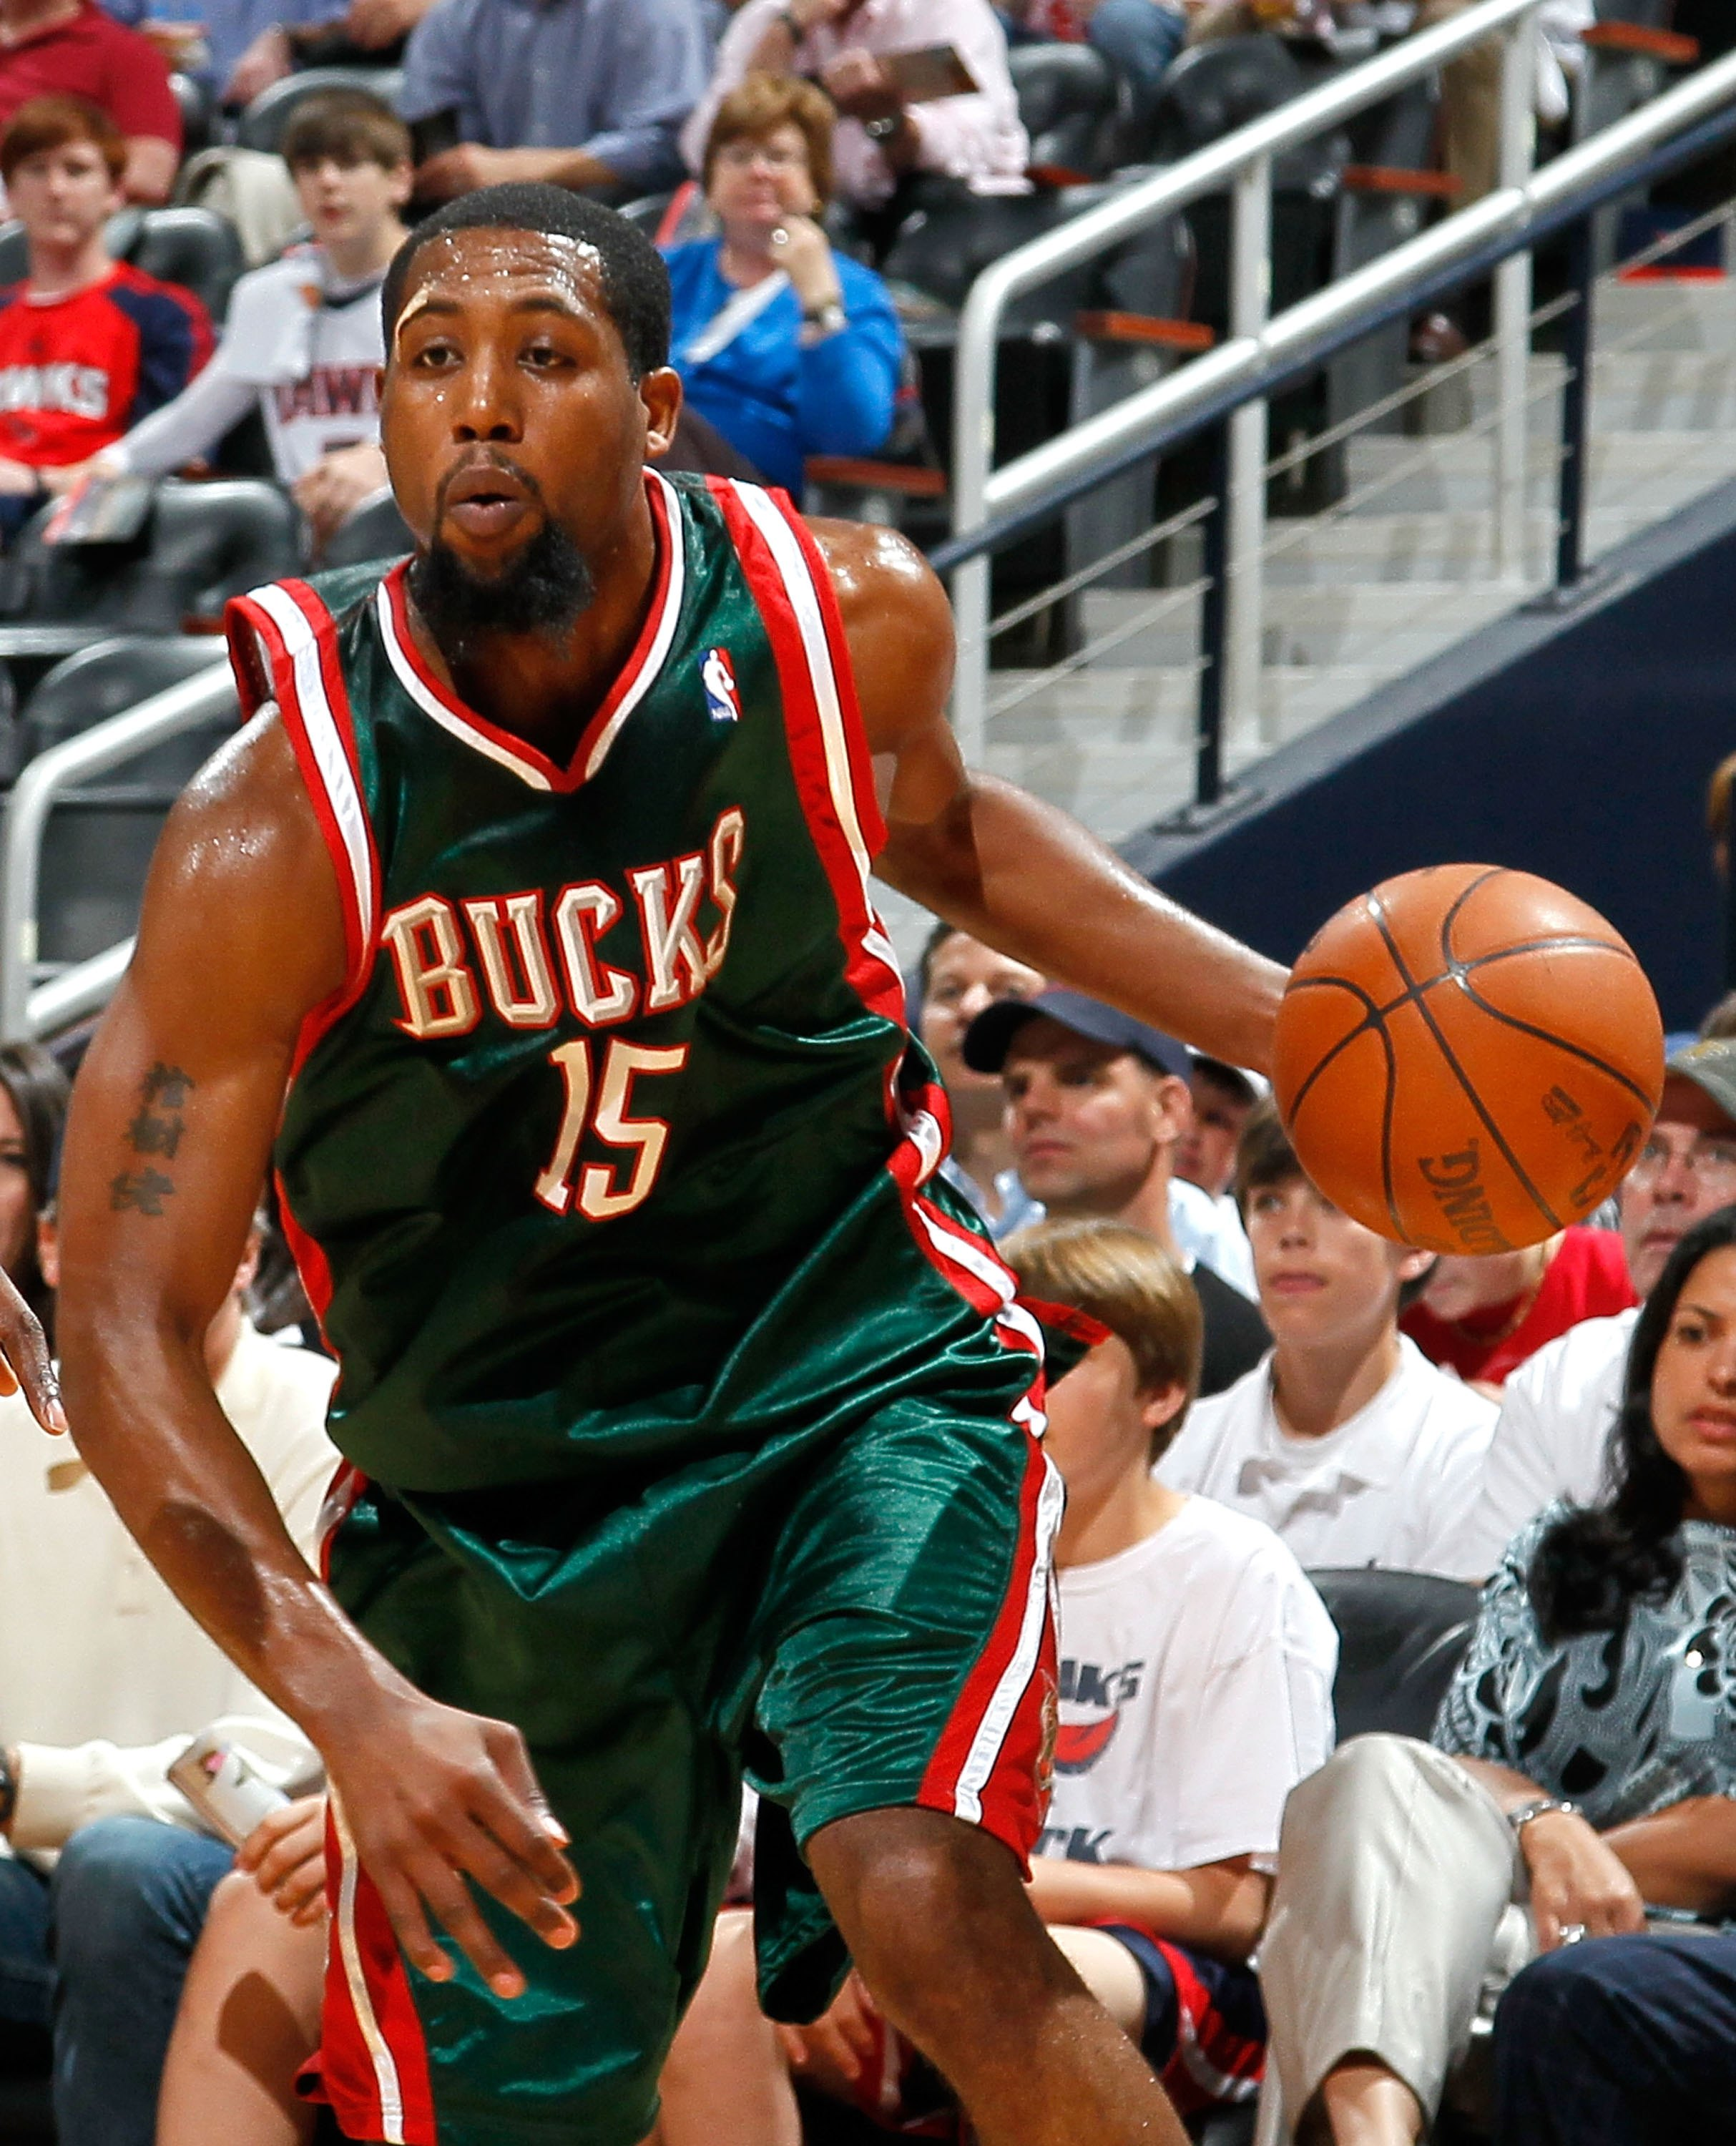 ATLANTA - APRIL 20:  John Salmons #15 of the Milwaukee Bucks against the Atlanta Hawks at Philips Arena on April 20, 2010 in Atlanta, Georgia.  NOTE TO USER: User expressly acknowledges and agrees that, by downloading and/or using this Photograph, User is